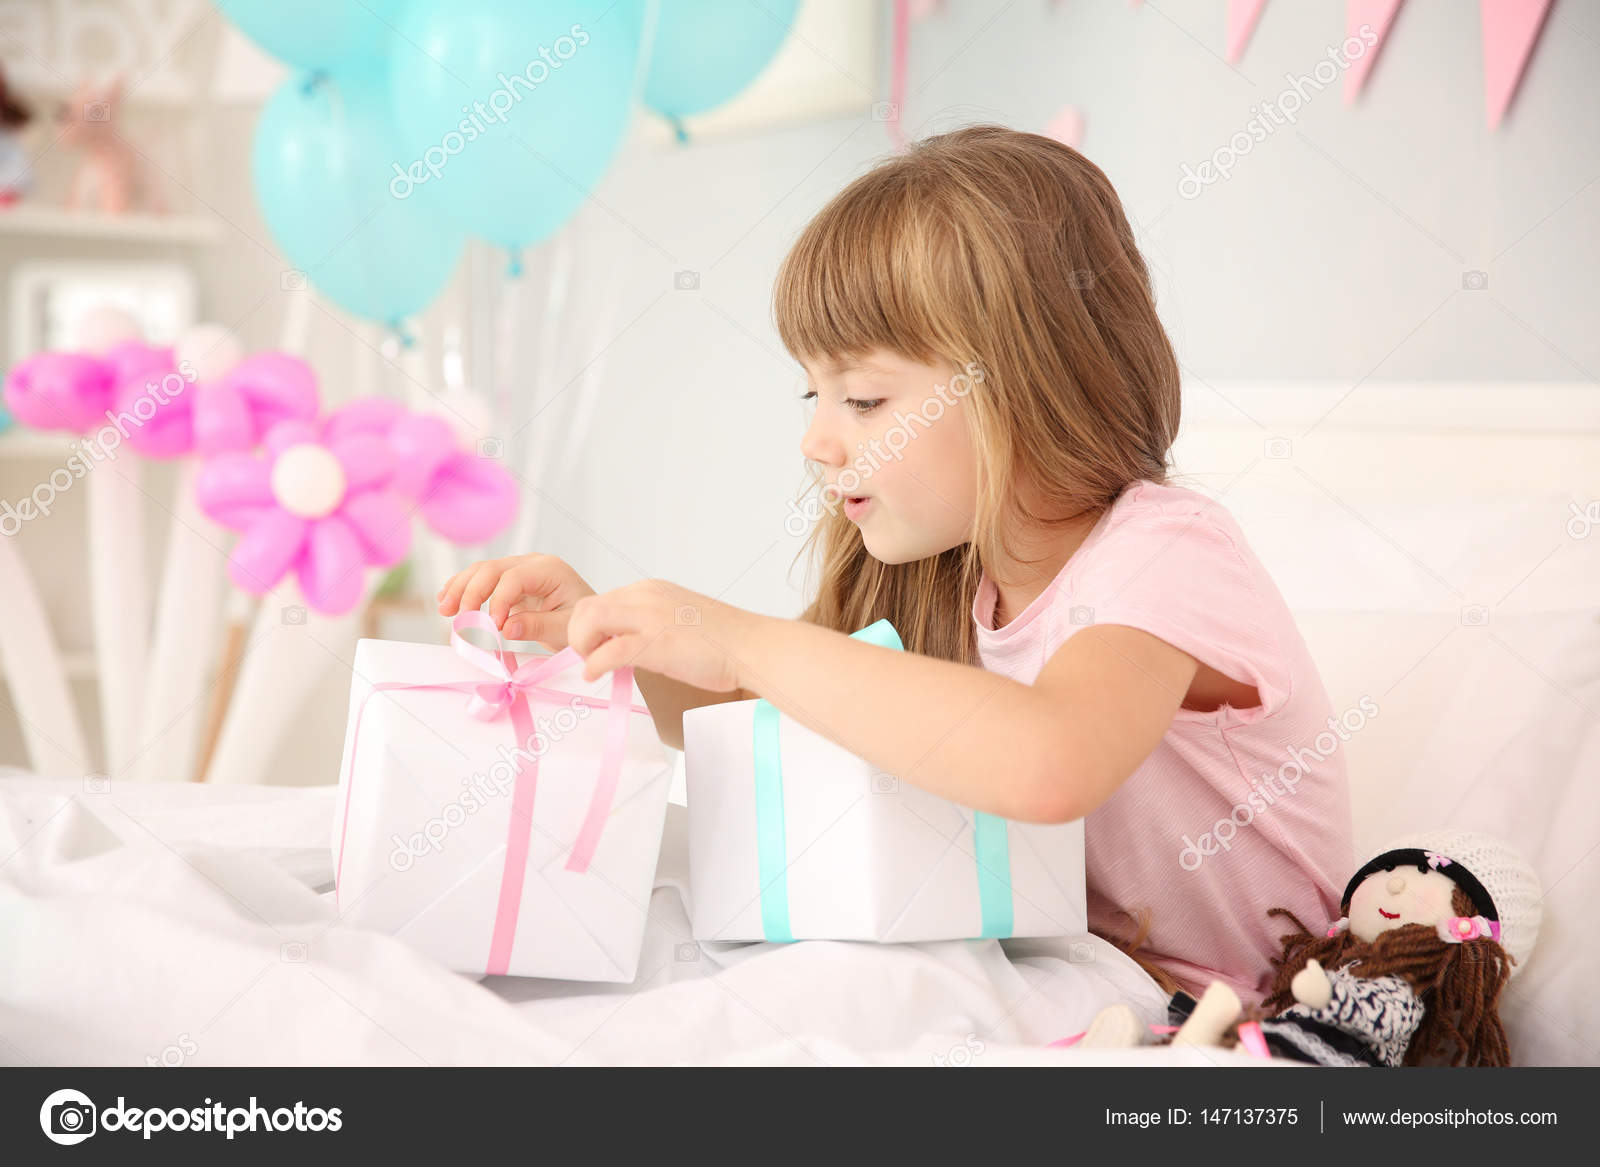 Cute Birthday Girl Opening Boxes With Presents While Sitting On Bed